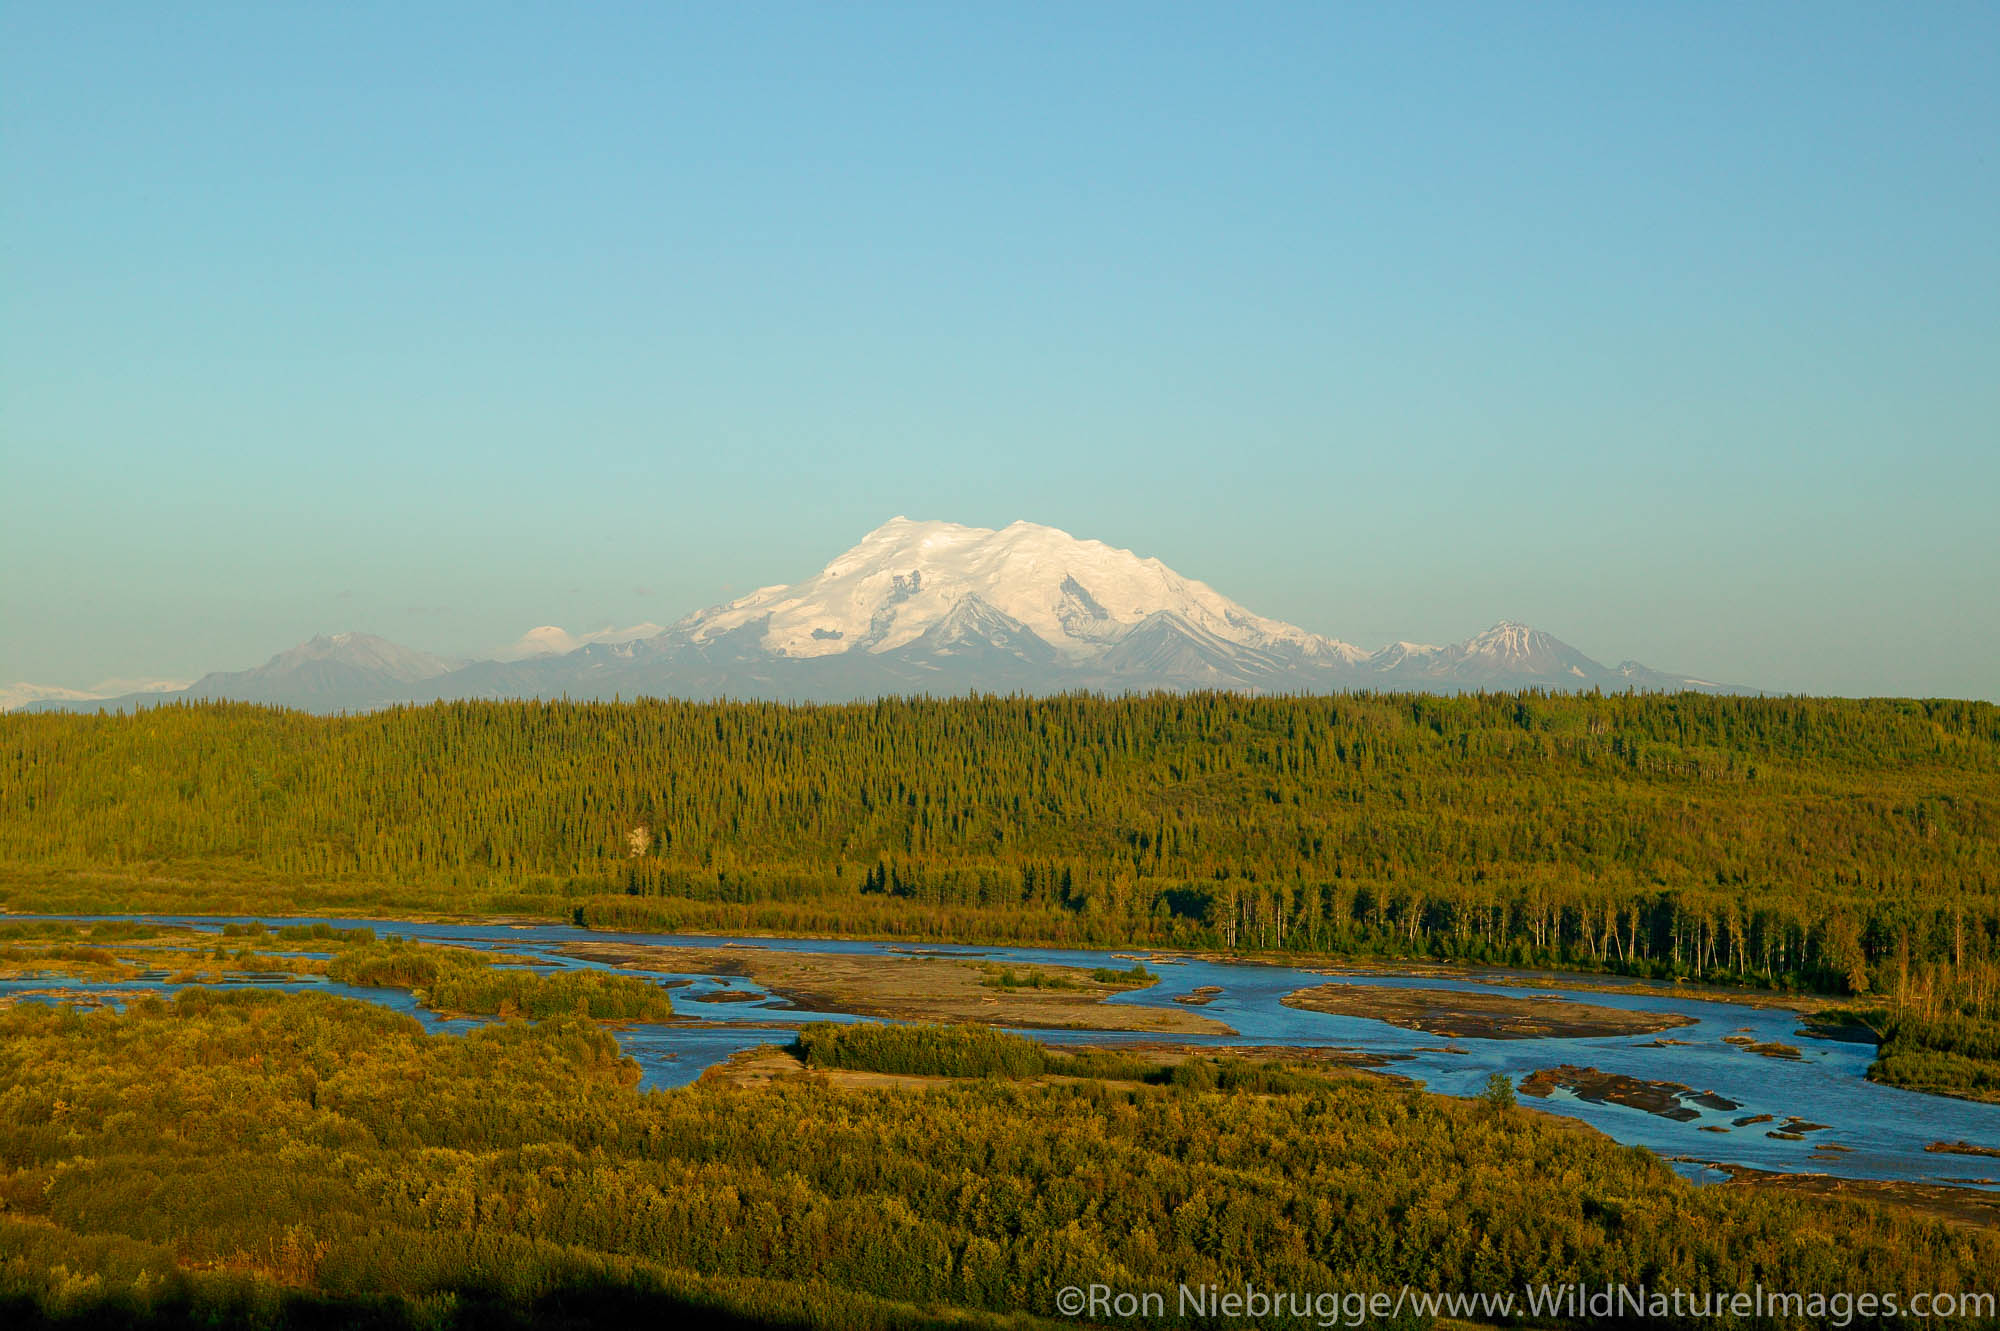 The Copper River and Mt Drum of the Wrangell-St Elias National Park in the background, Alaska.